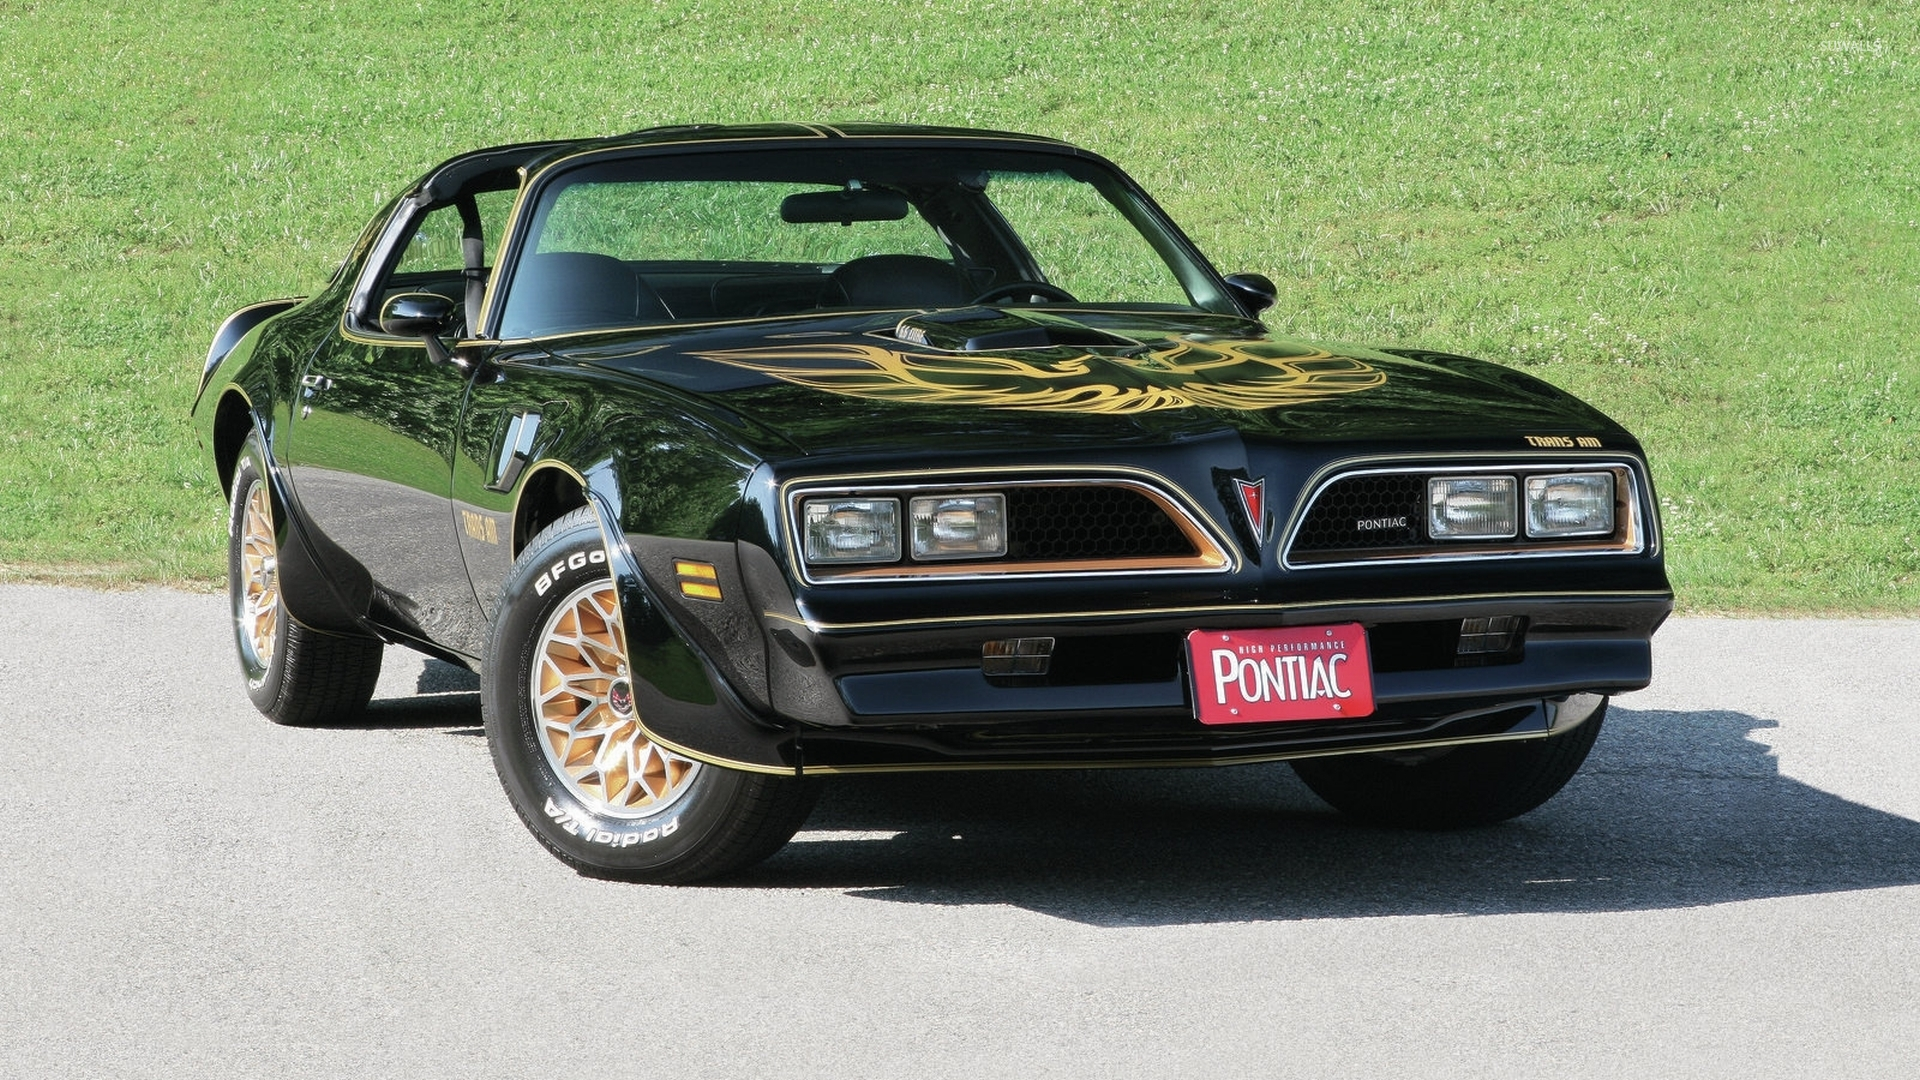 Pontiac Firebird Trans Am Wallpaper Car Wallpapers 33710